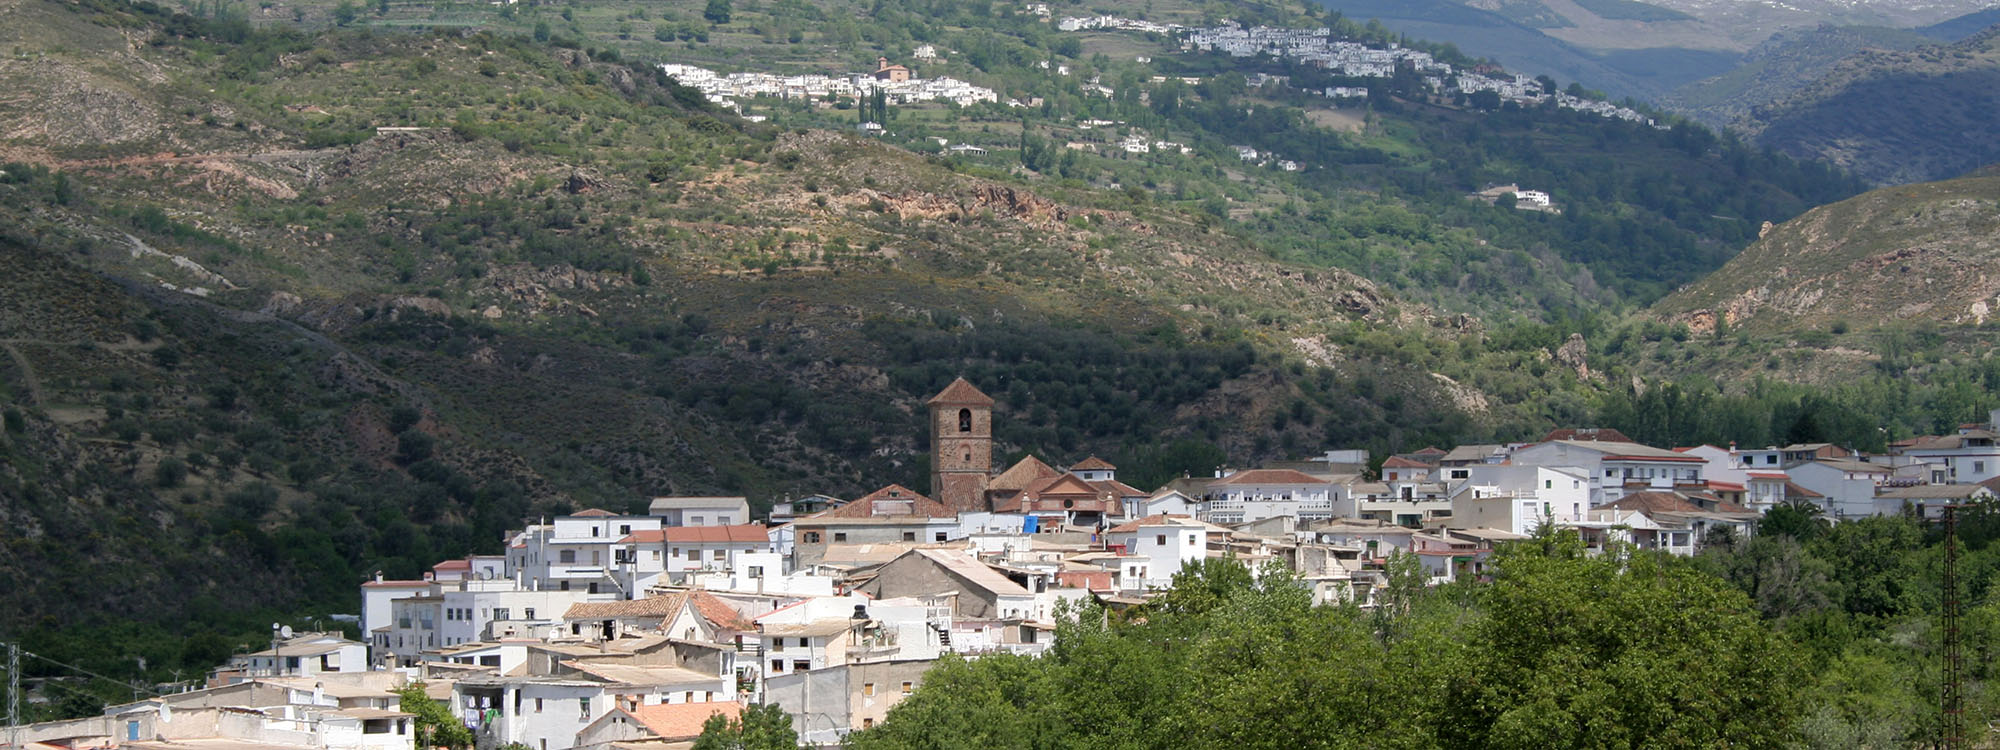 DAY 6: WHITE VILLAGES OF THE ALPUJARRAS